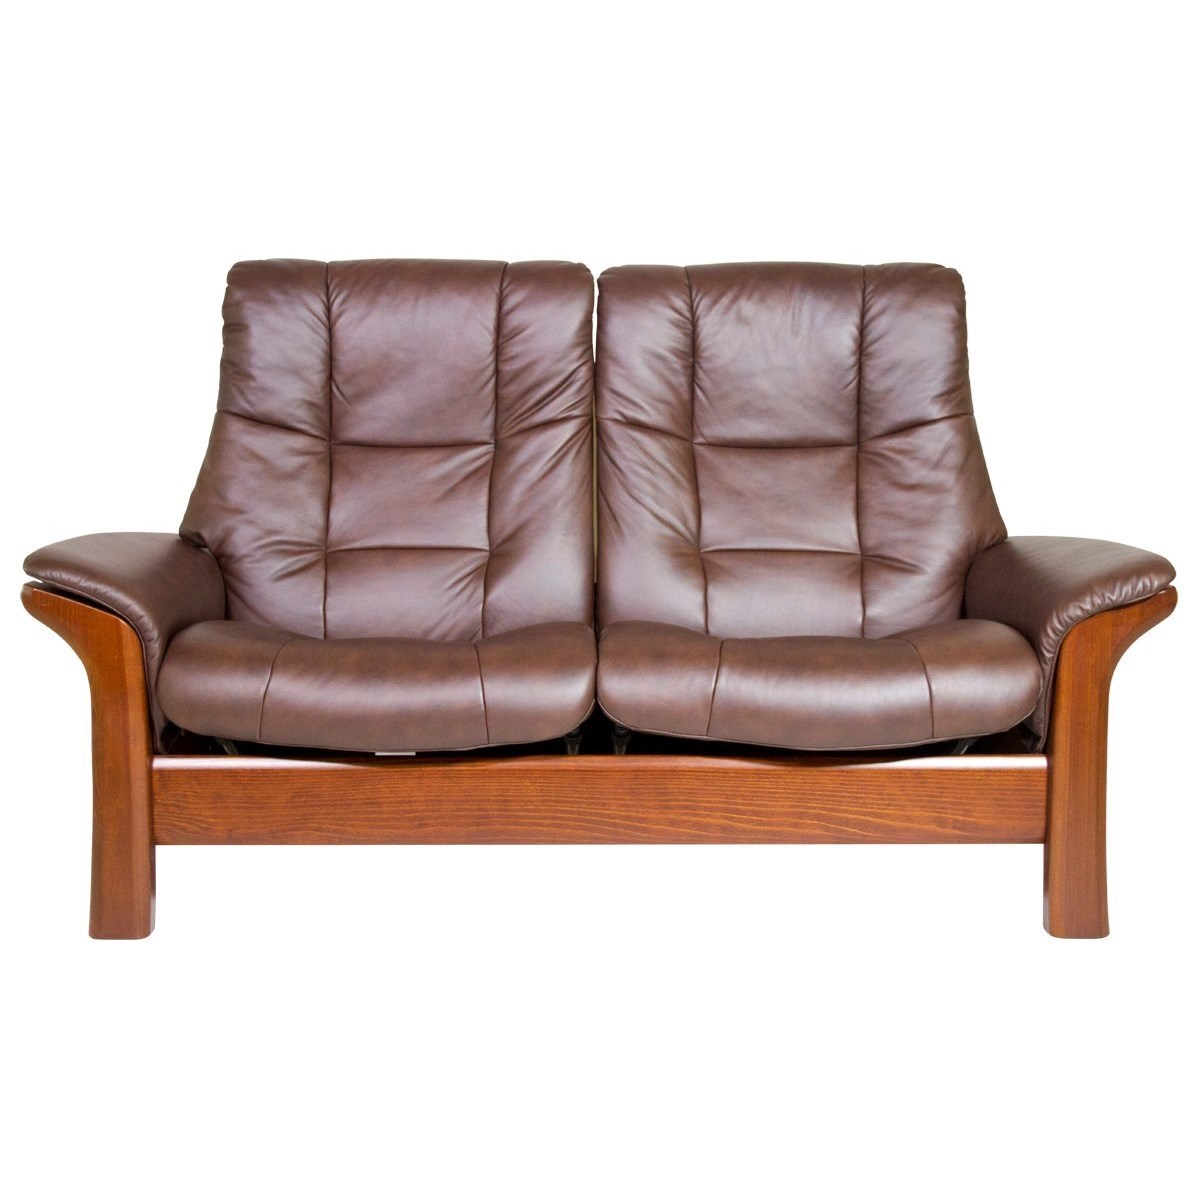 Stresless Buckingham High Back 2 Seater Reclining Loveseat By Stressless At Dunk Bright Furniture